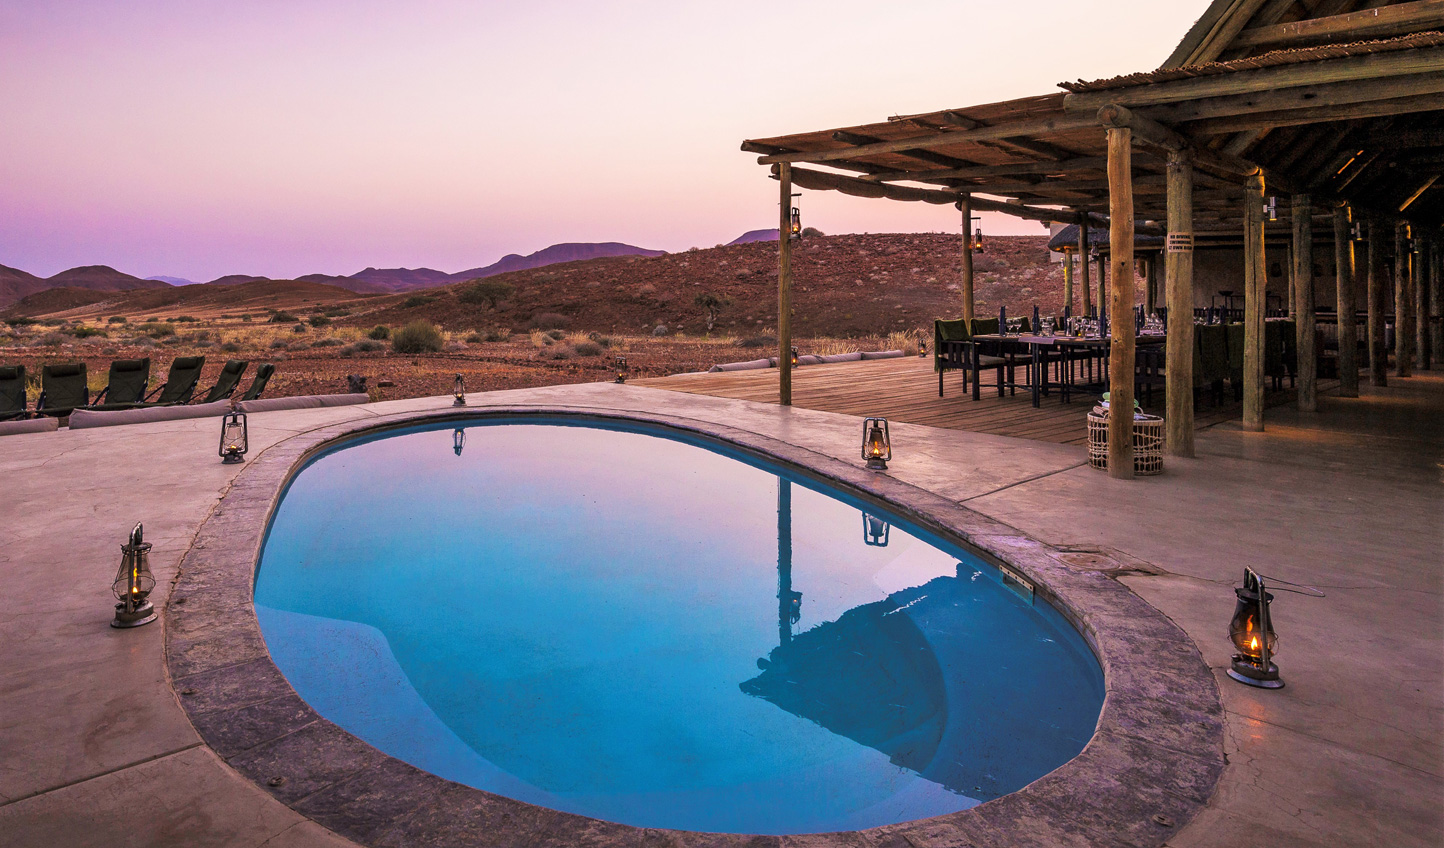 Slip into splendid isolation at Damaraland Camp